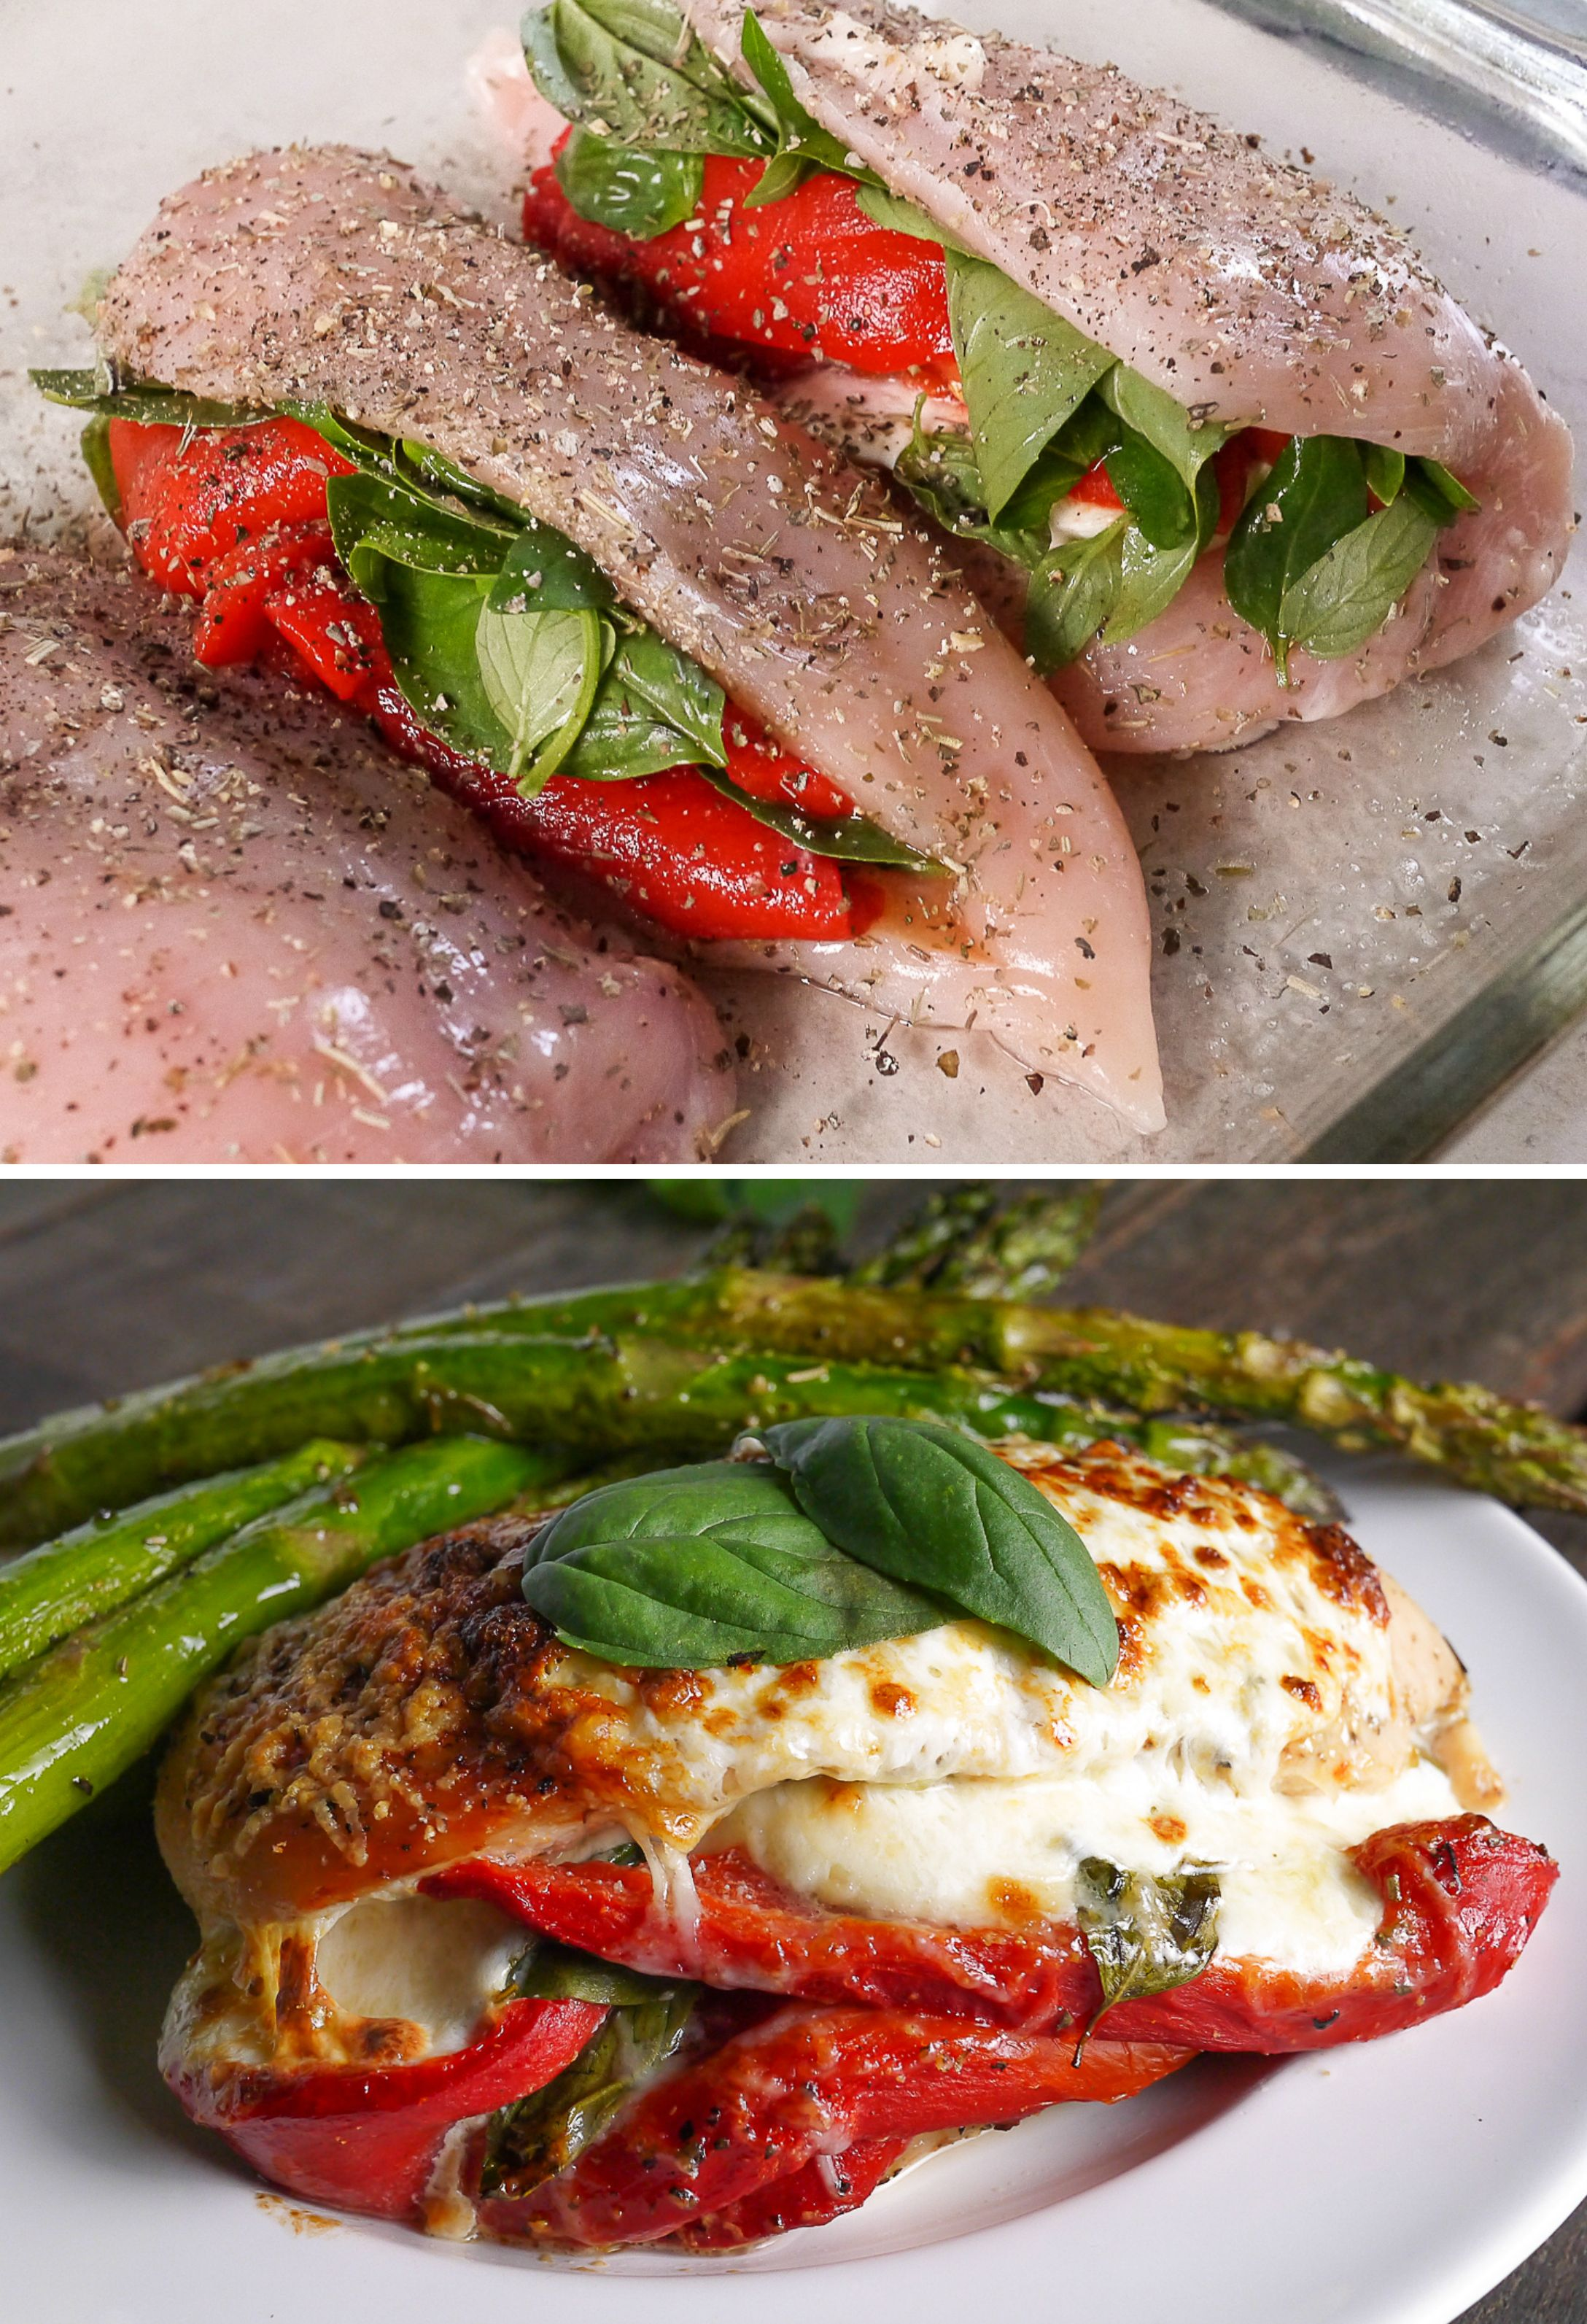 Roasted Red Pepper Mozzarella And Basil Stuffed Chicken Recipe Healthy Recipes Food Recipes